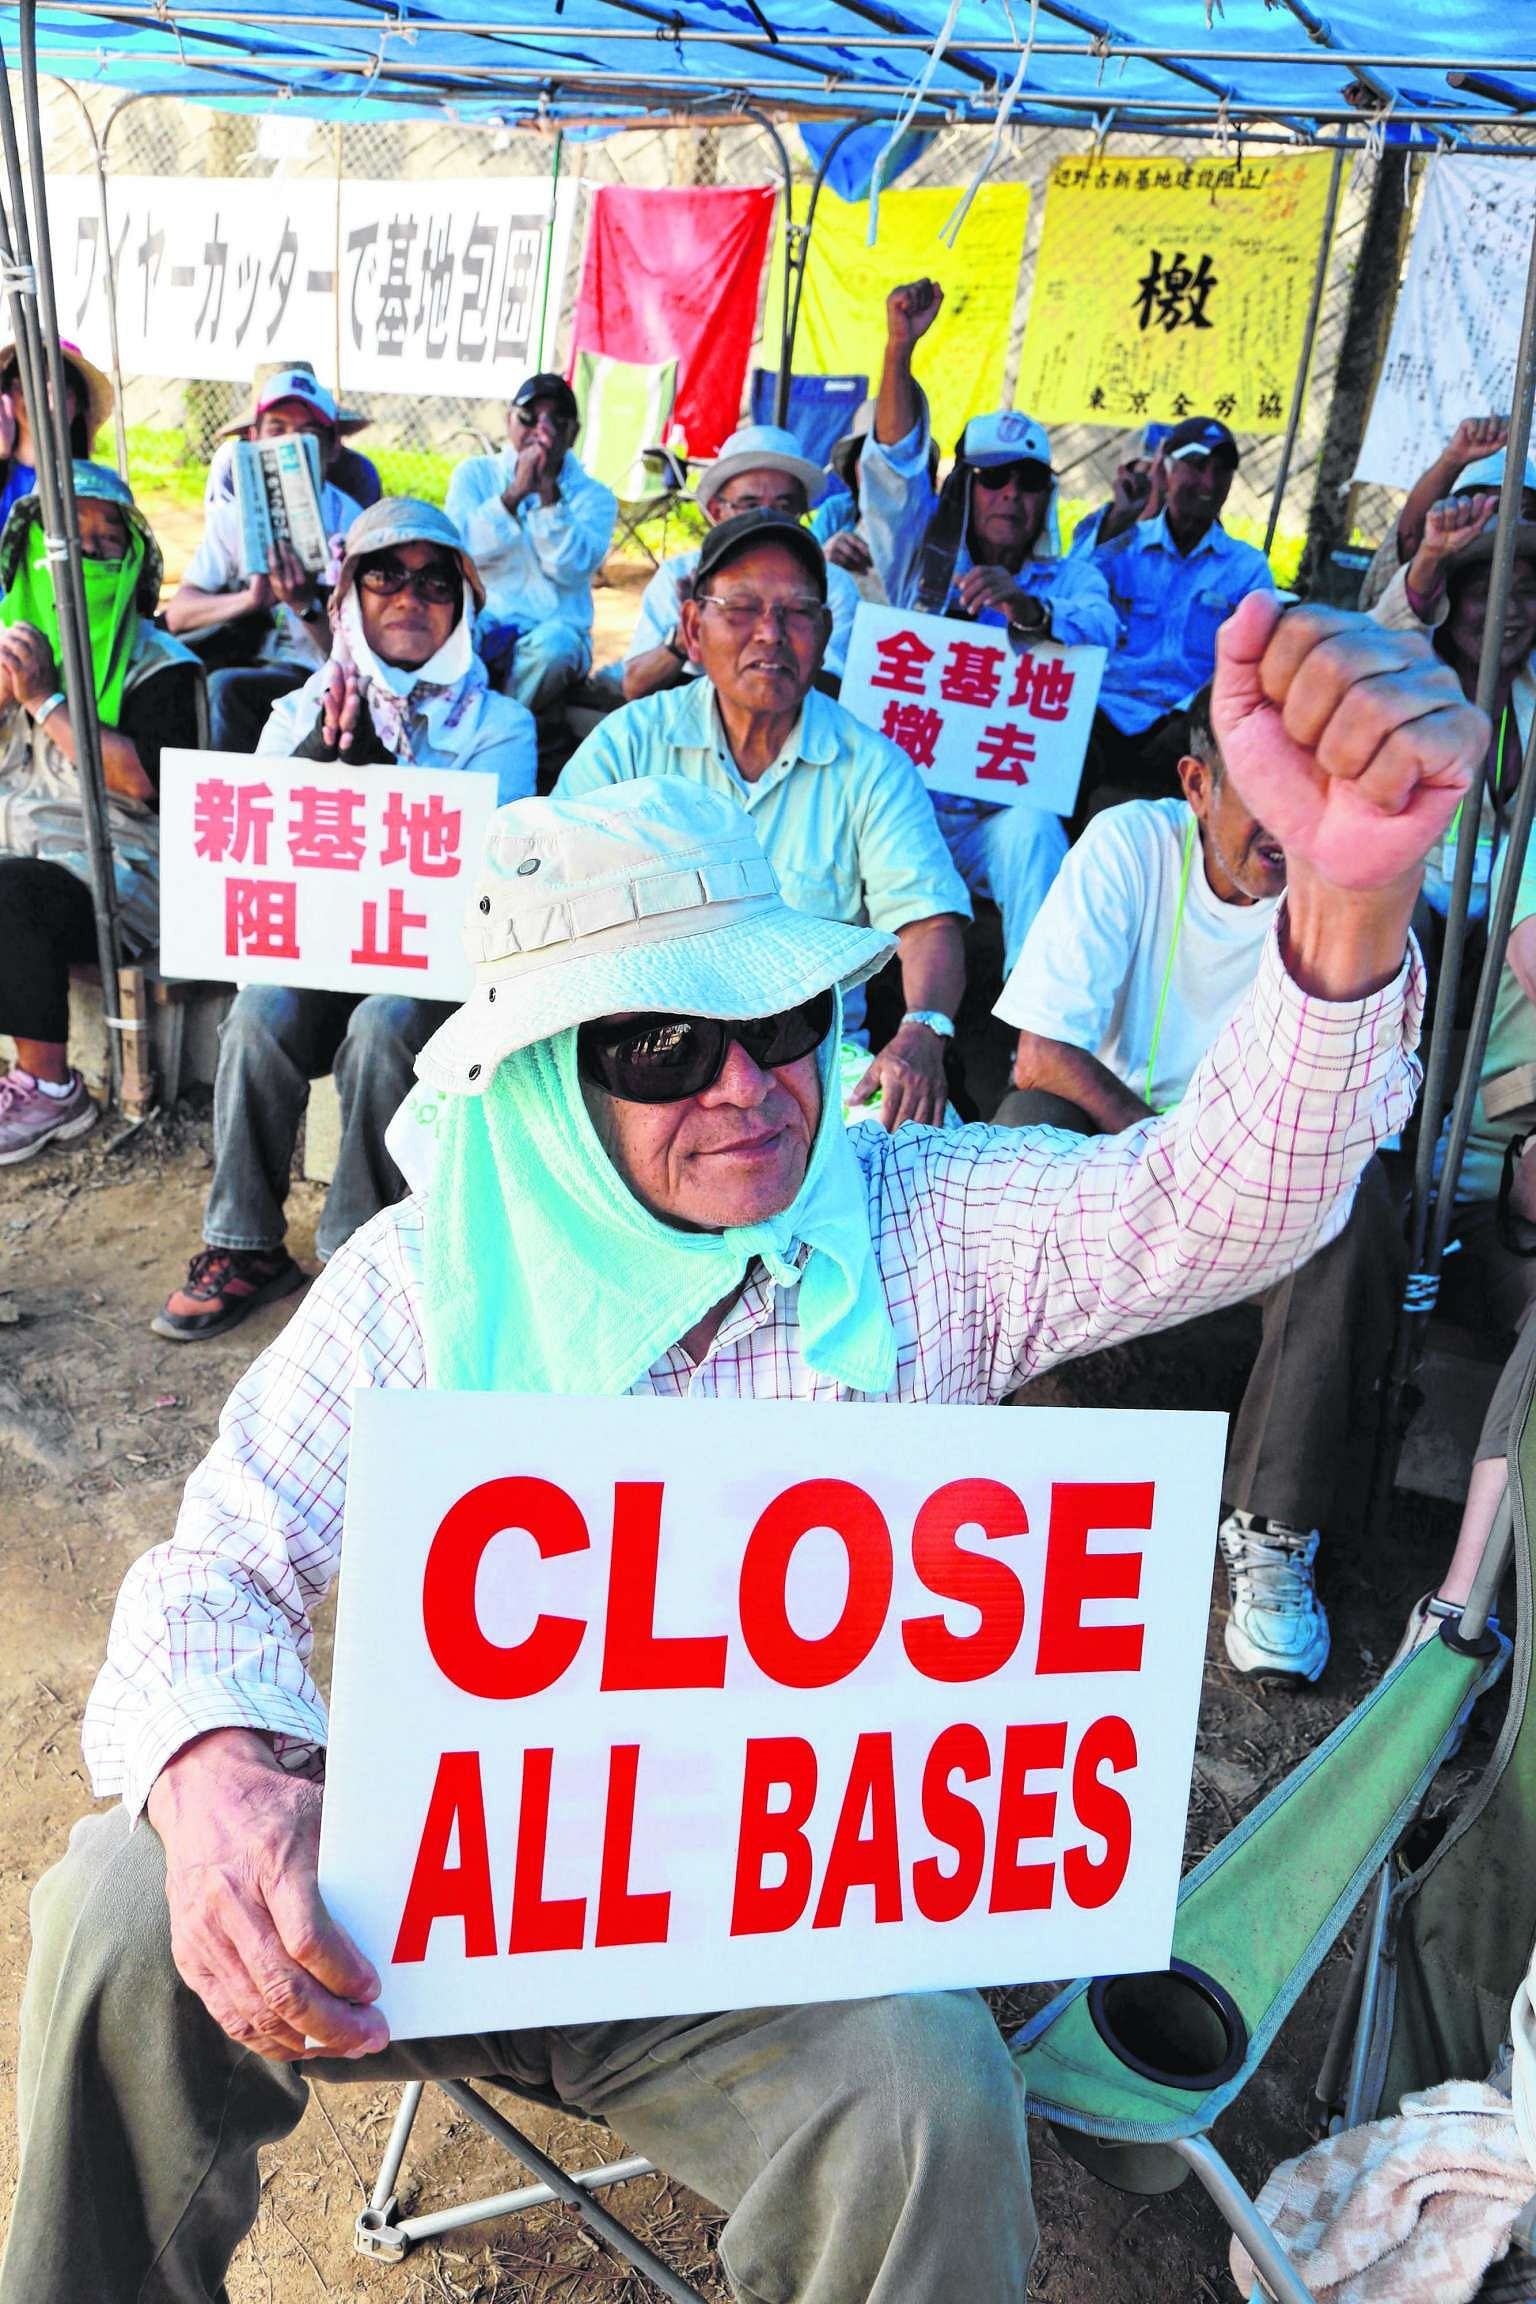 Protesters in Nago, Okinawa, making their stand yesterday against plans for a new US airbase on the southern Japanese island.